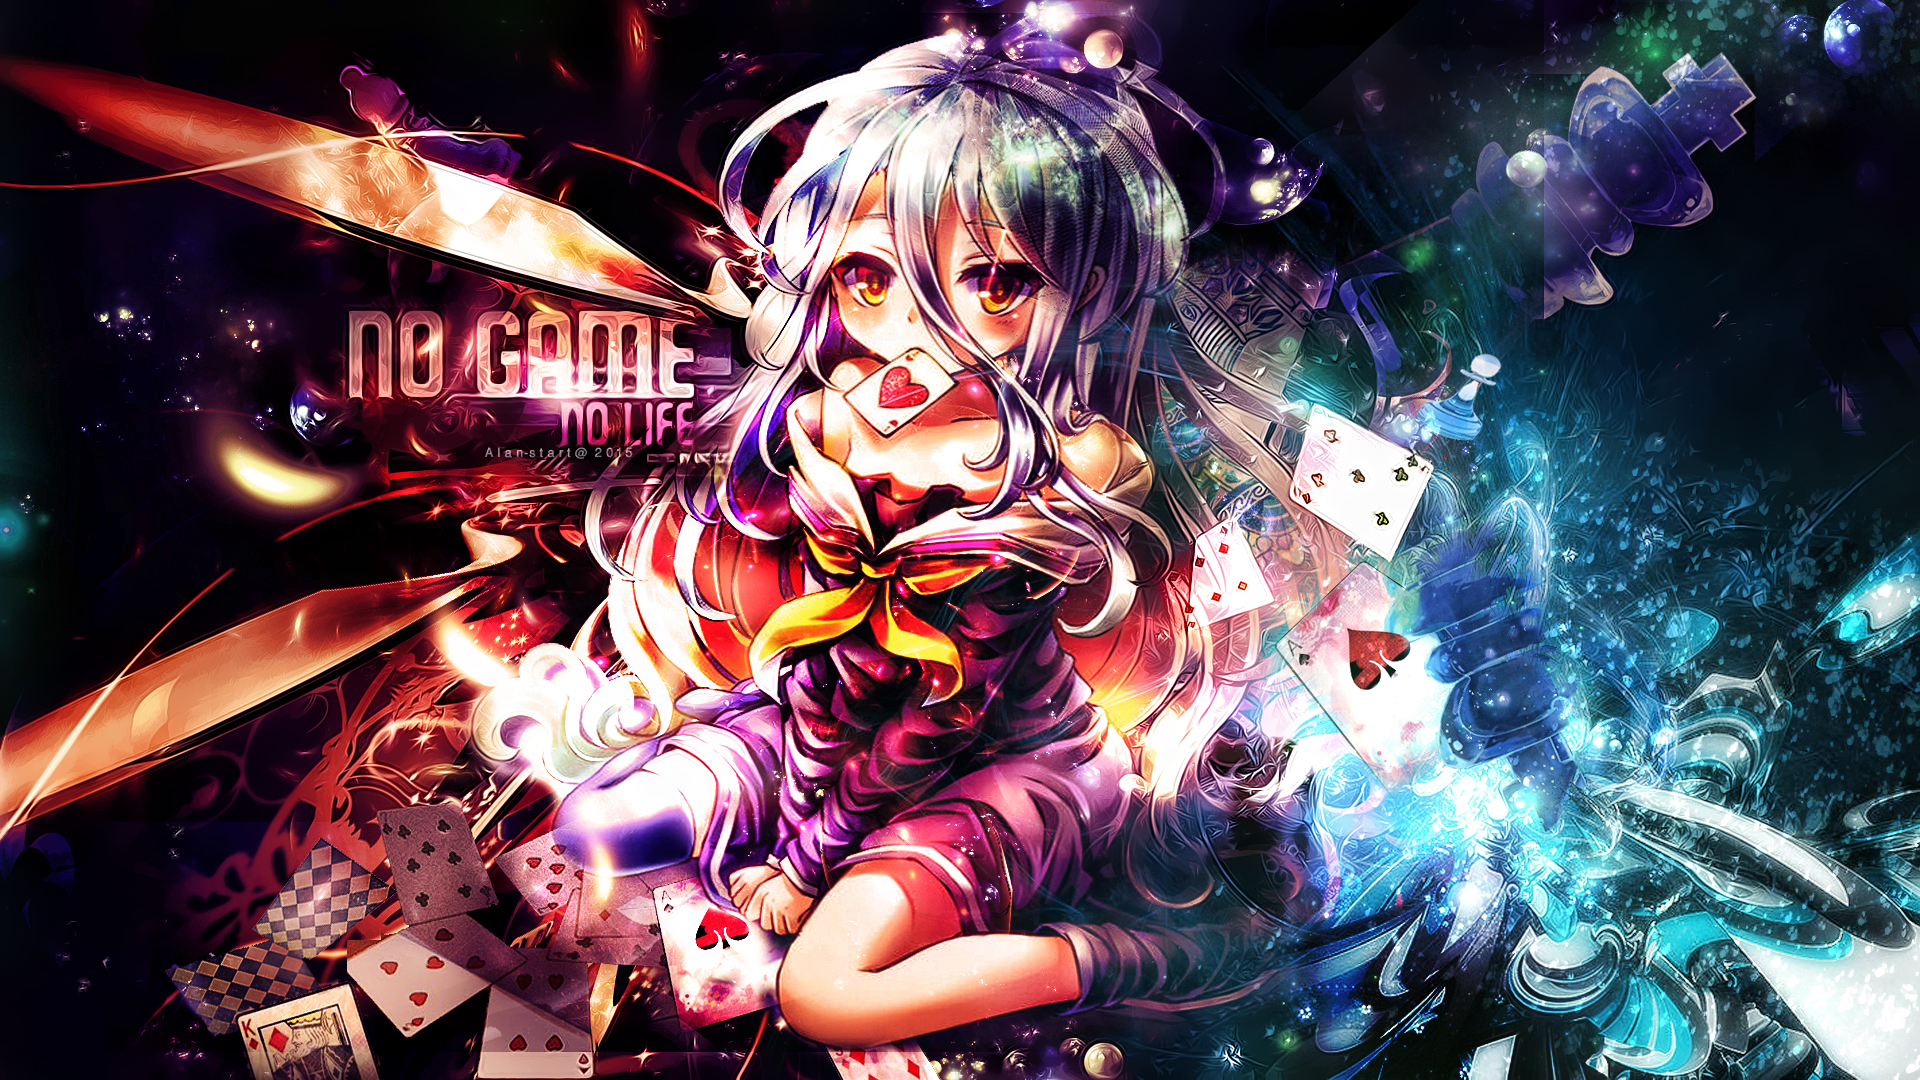 No Game No Life Wallpaper 215249 Hd Wallpaper